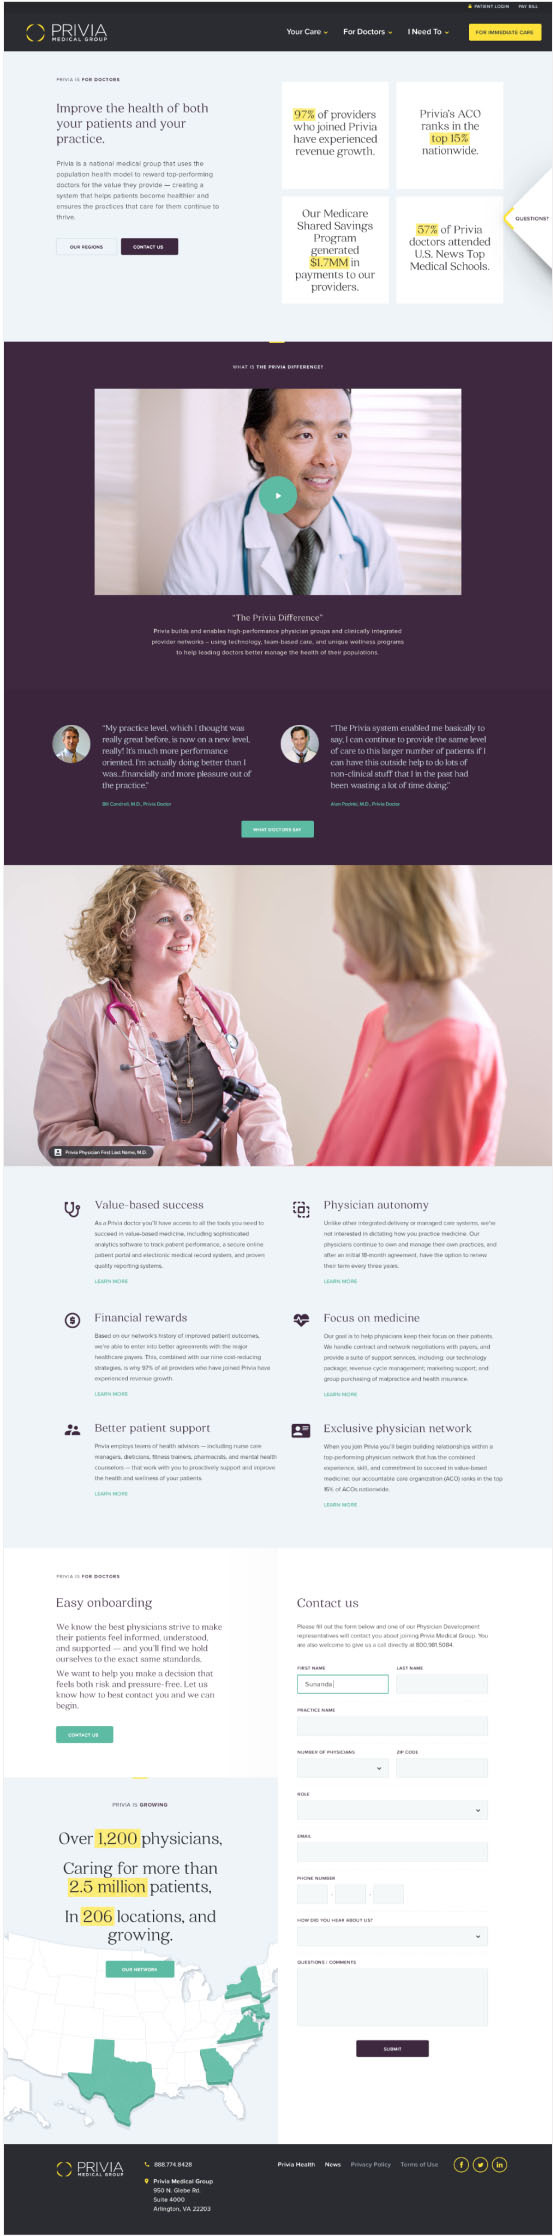 Design layout for Privia's marketing site.